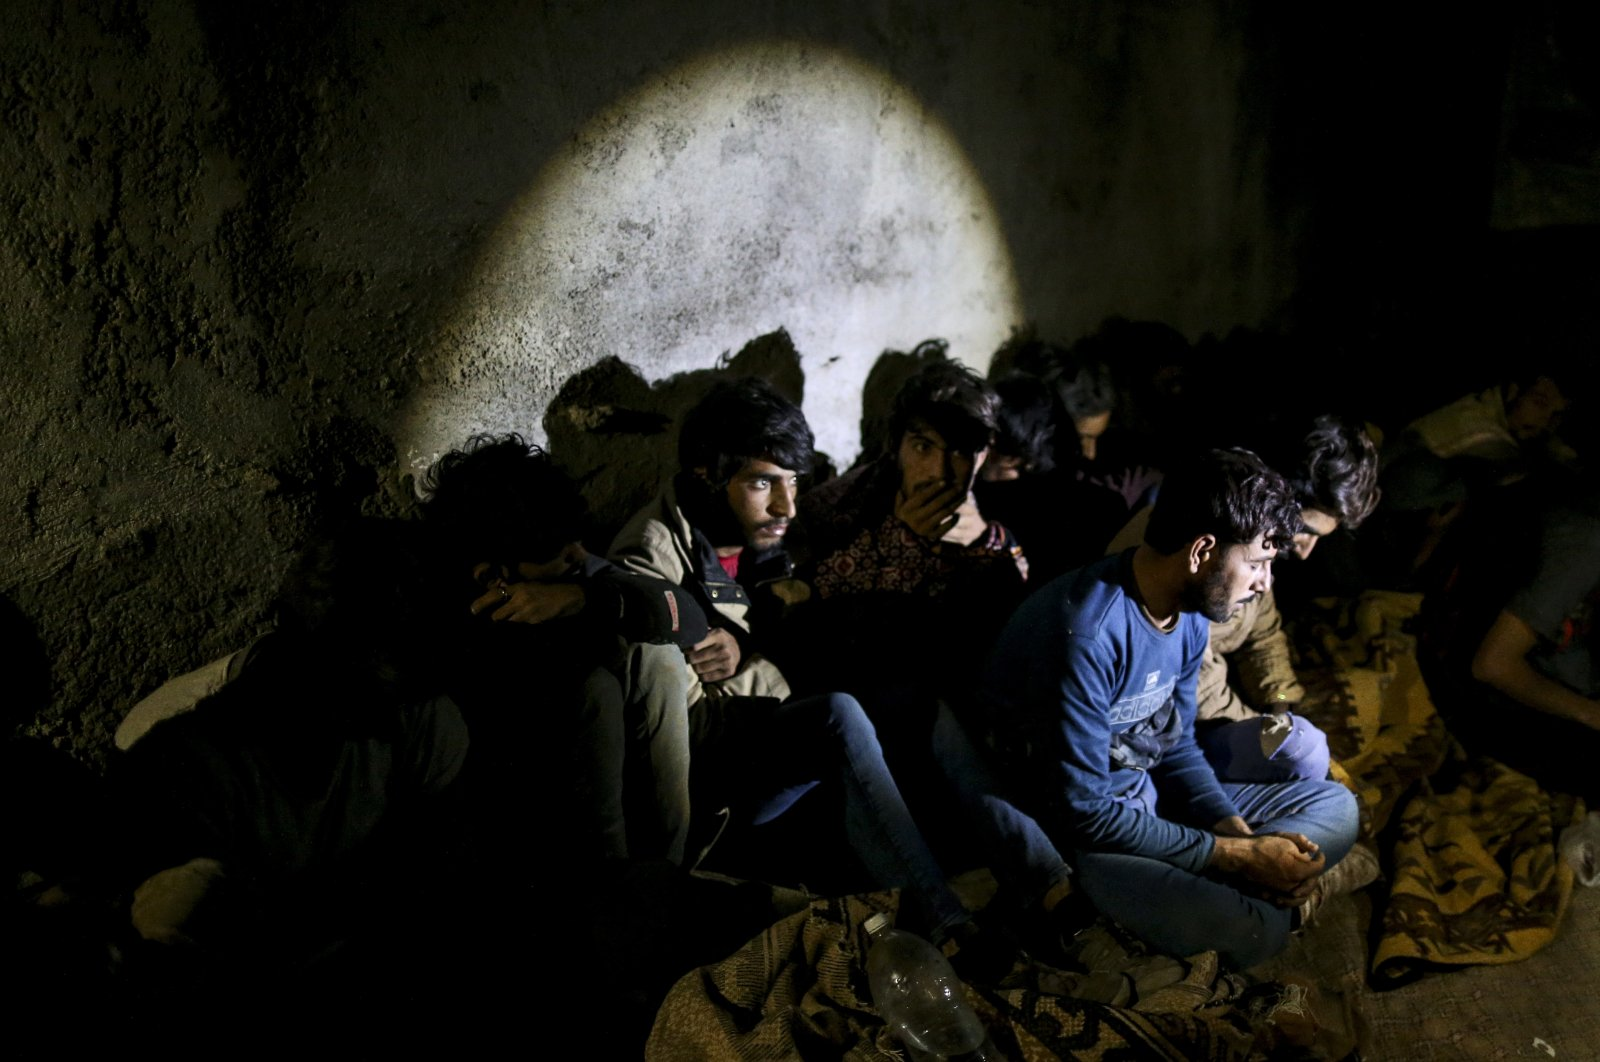 Turkish security forces apprehend a group of irregular migrants in an operation aimed at stemming the recent influx of migration, mainly coming from Afghanistan and stopping human trafficking operations in the area at the border province of Van, eastern Turkey, Aug. 21, 2021. (AP Photo)